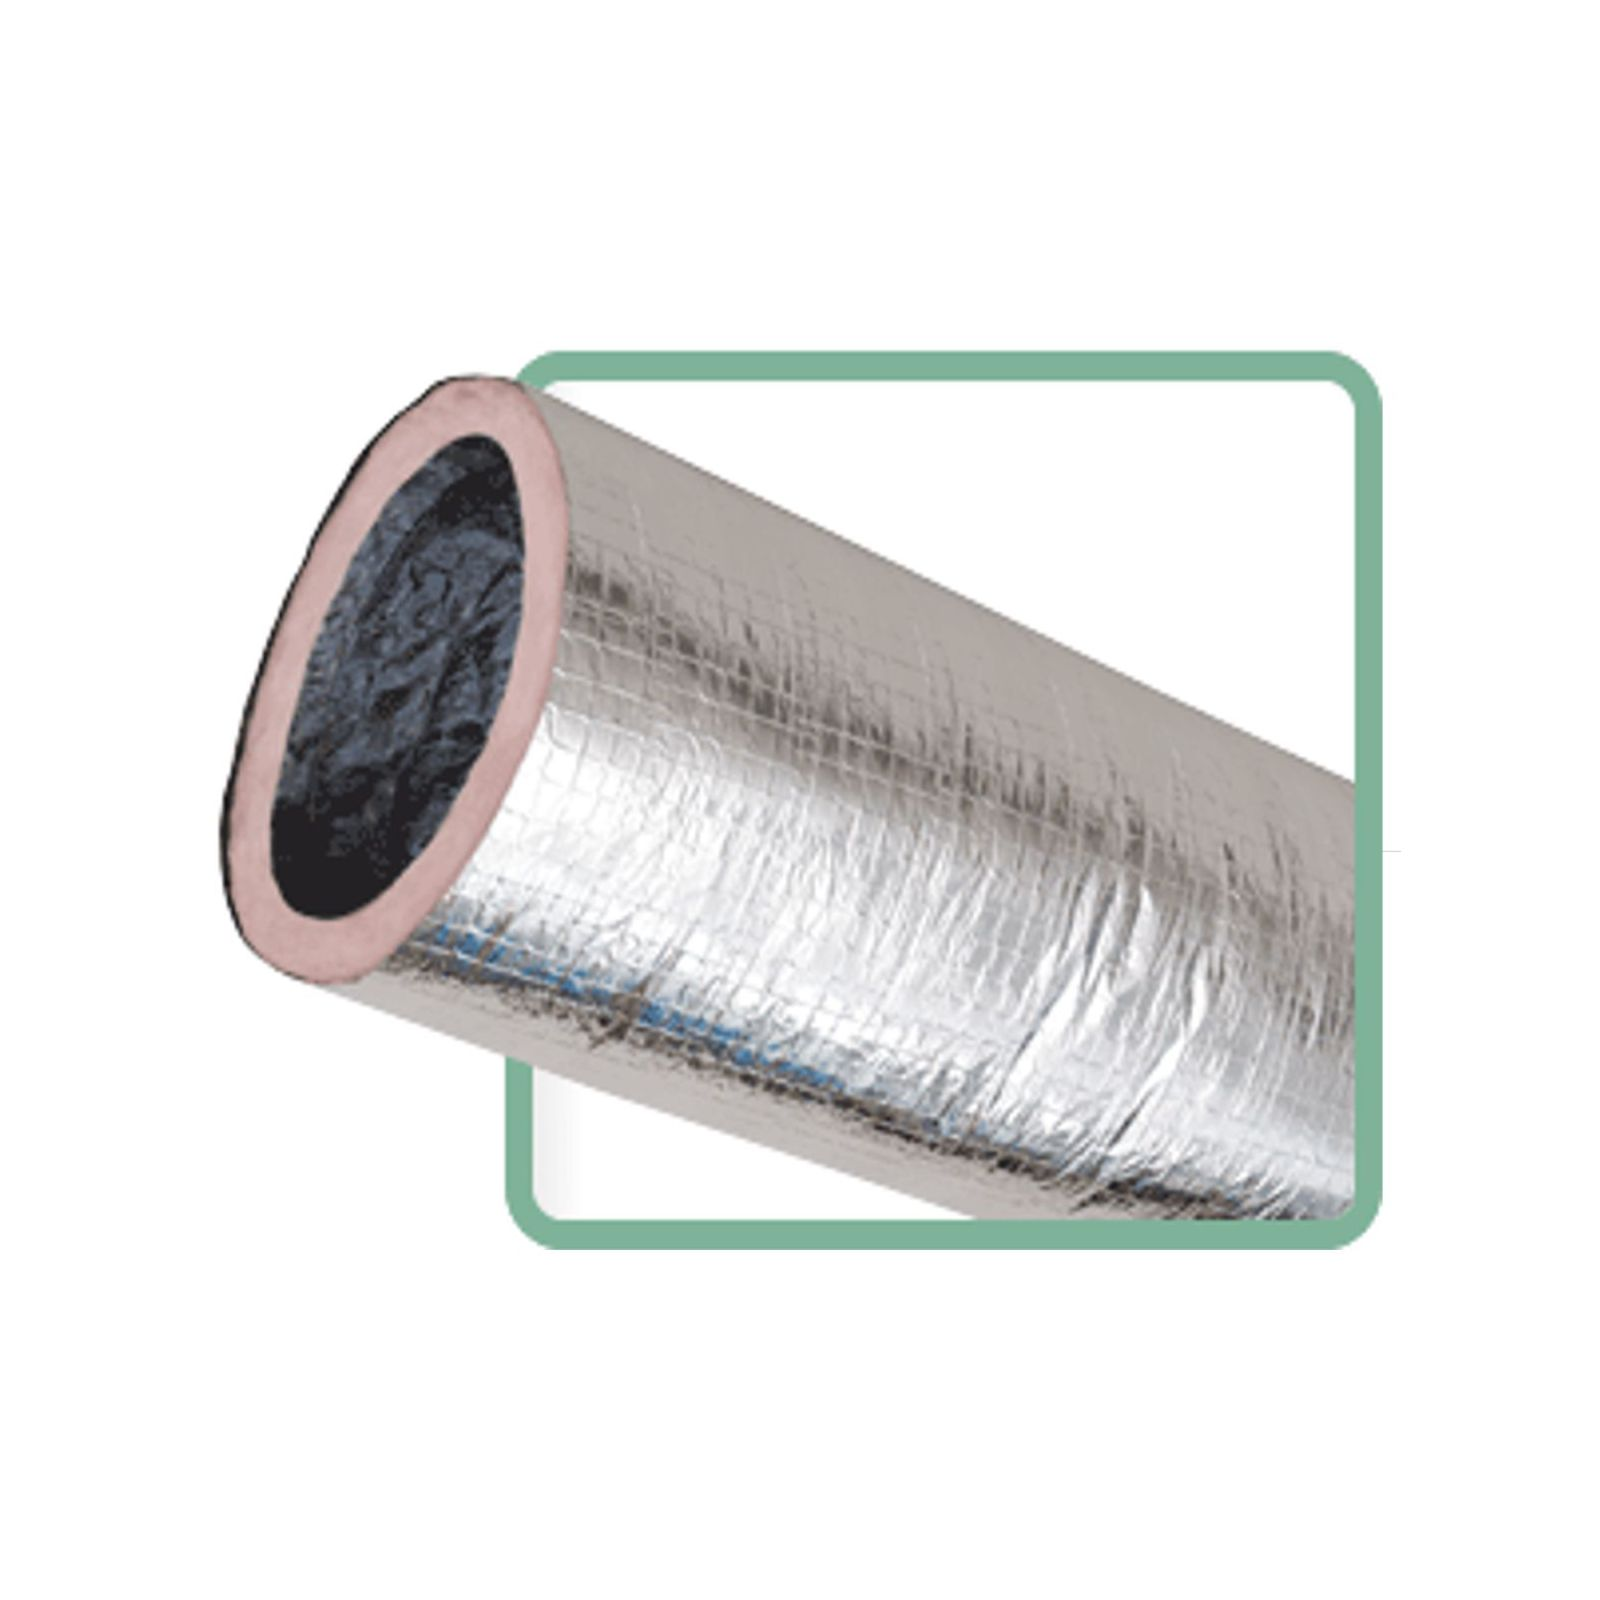 "Thermaflex 053716000107 - KM Silver Flex-Vent Insulated Flexible Duct Assembly, 16"" X 7', R4.2"